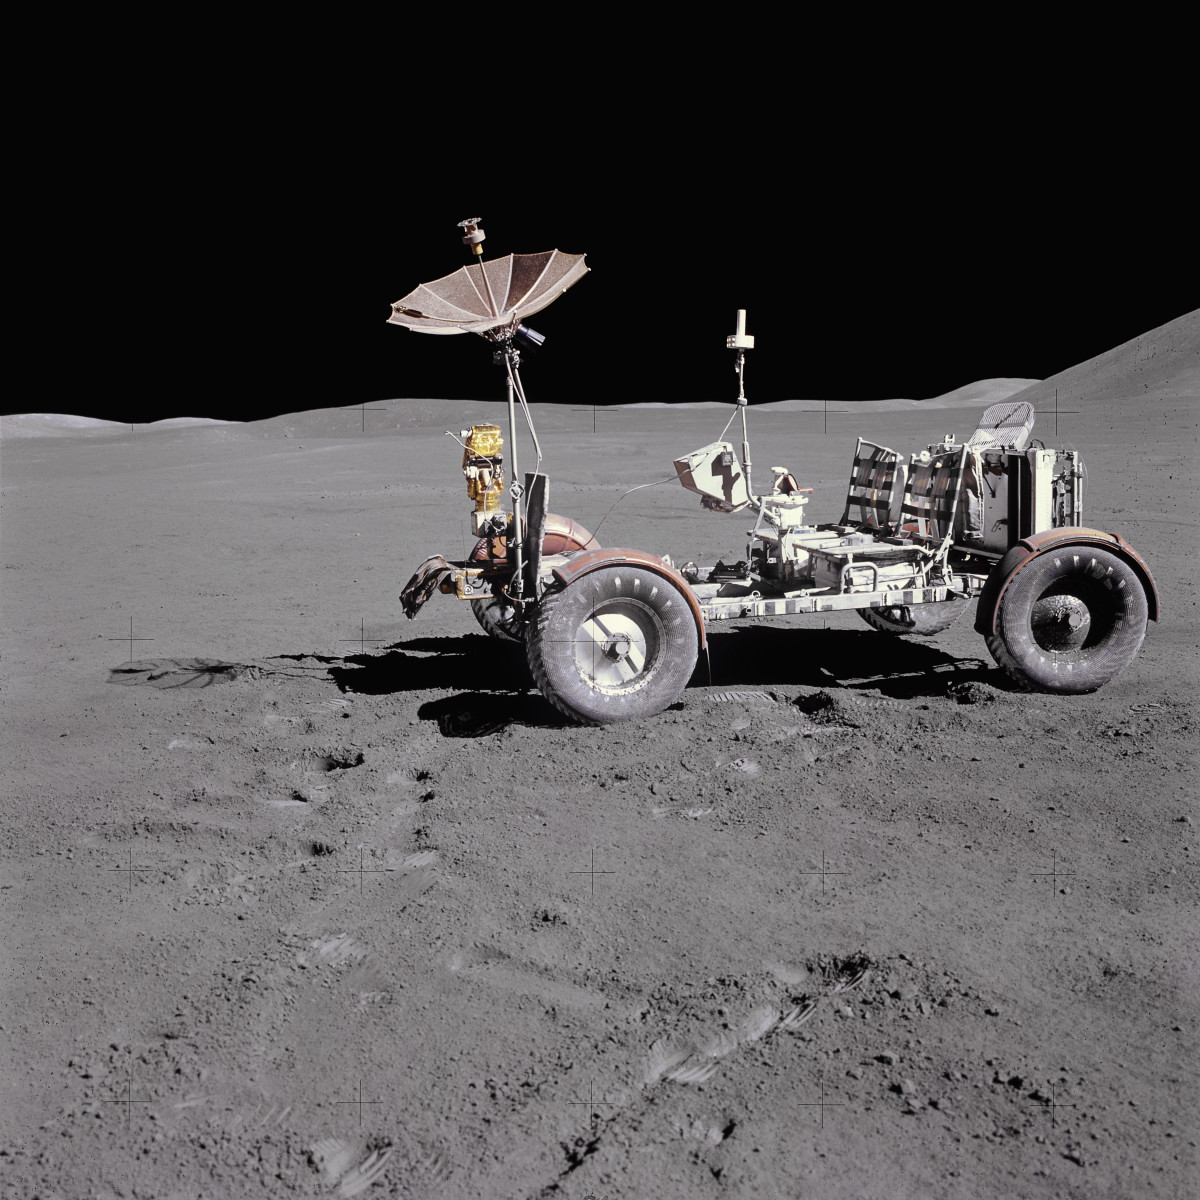 The Apollo 15 lunar rover, a four-wheeled vehicle used by NASA astronauts to travel over the moon's surface. This was the first mission to include the rover, which was also used on the Apollo 16 and Apollo 17 missions.